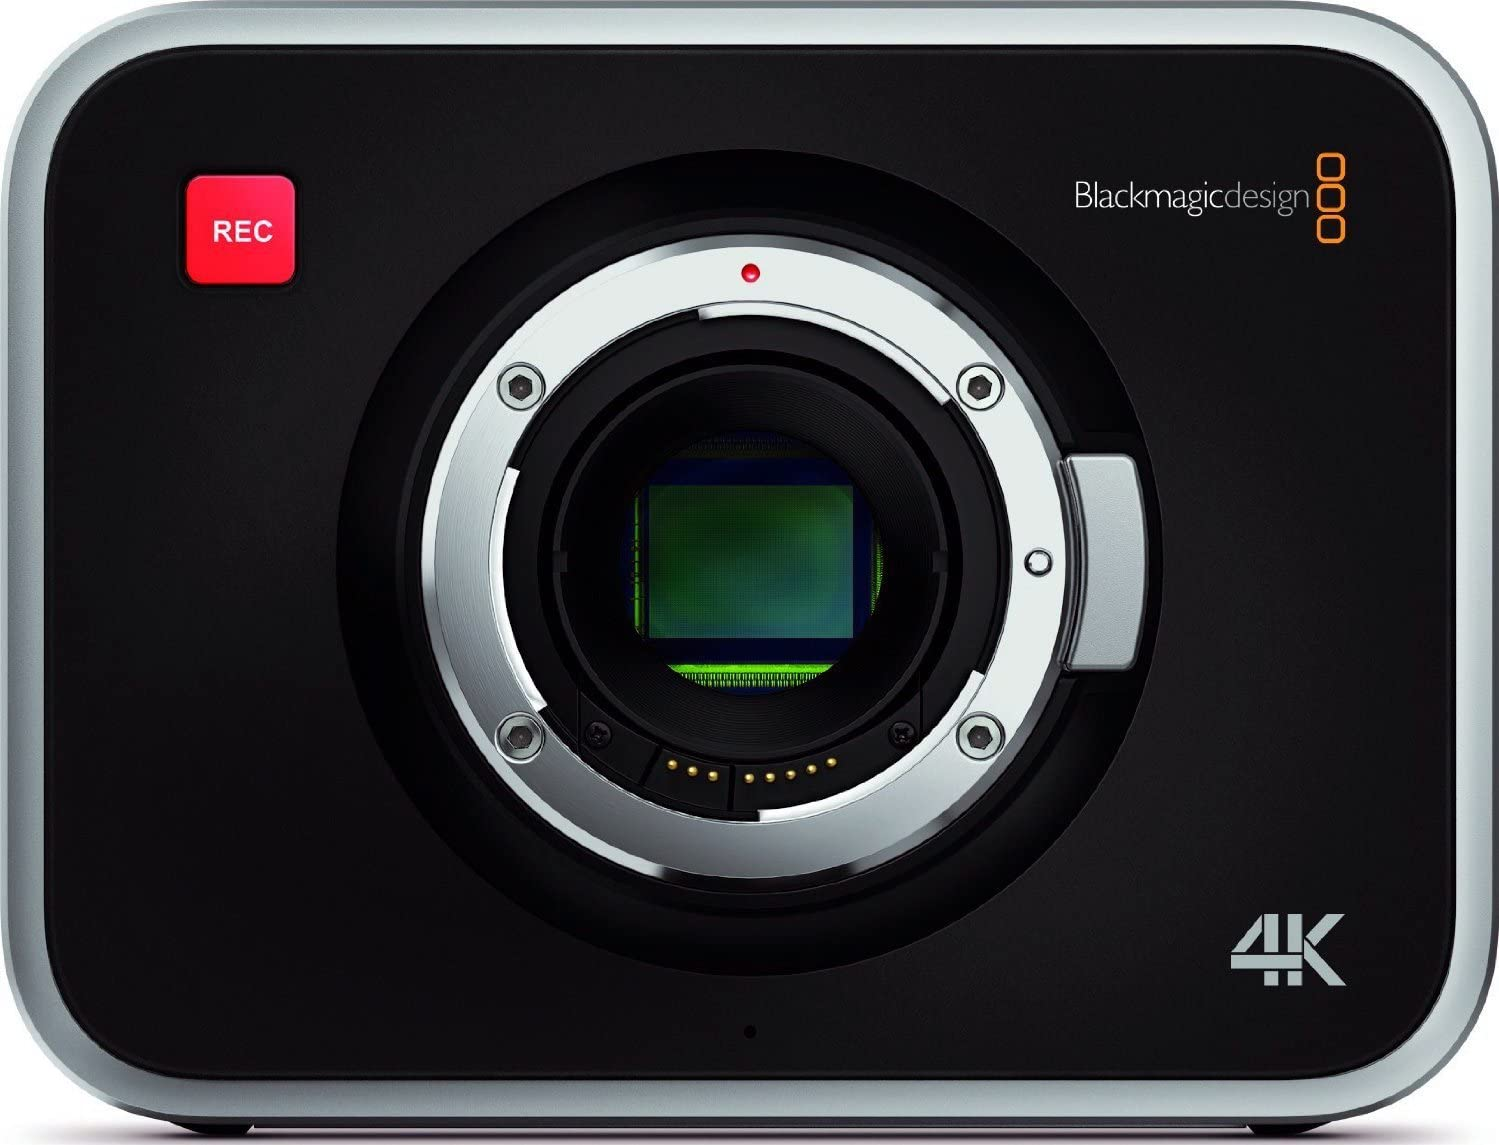 Blackmagic Design Blackmagic Cinema 4k